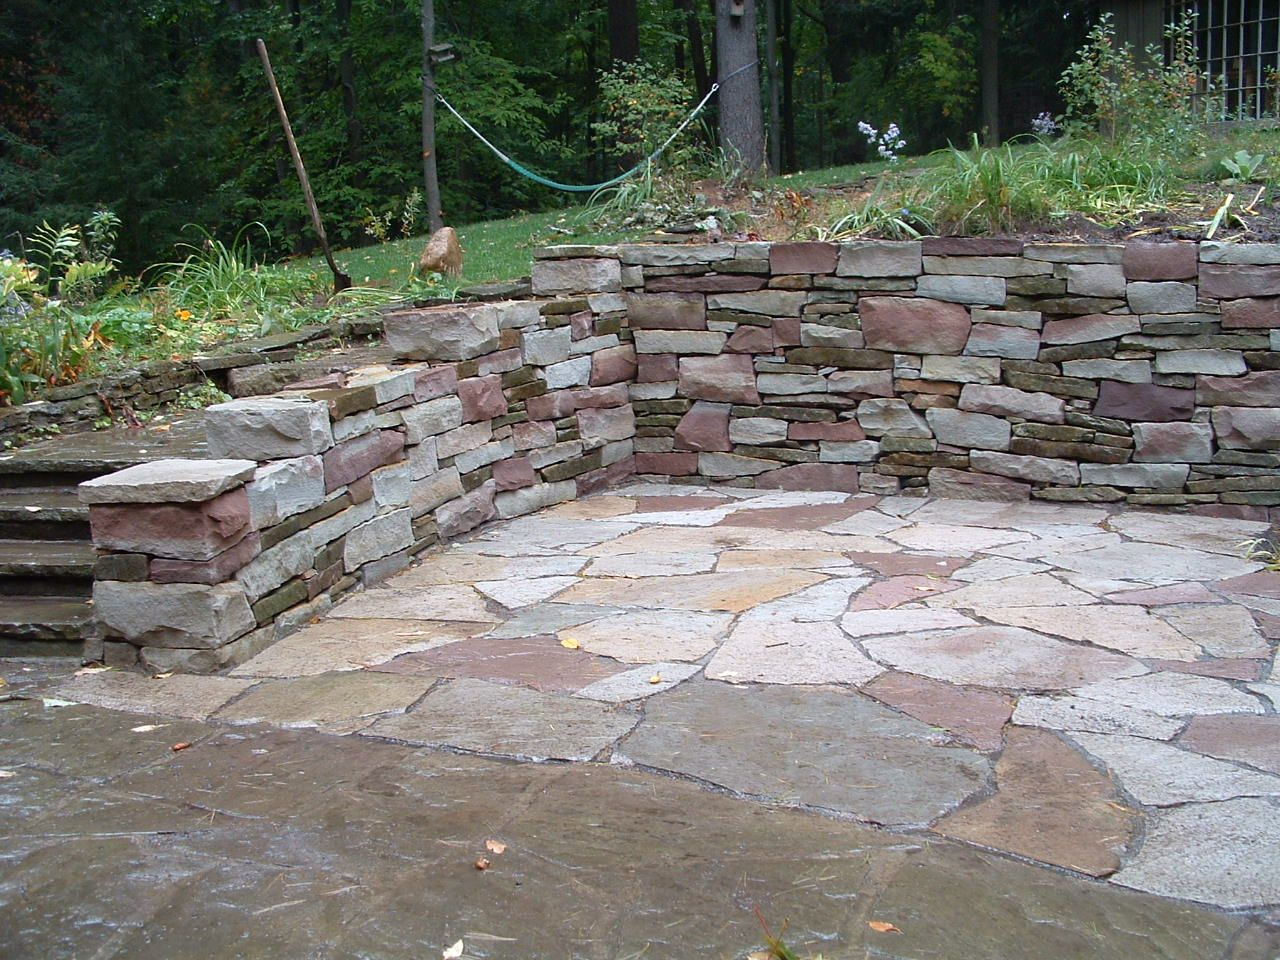 Retaining Wall Designs Ideas 2016 18 retaining wall blocks design on retaining wall ideas retaining wall design landscape Patio Designs Among Retaining Walls Matched With Stone Flooring